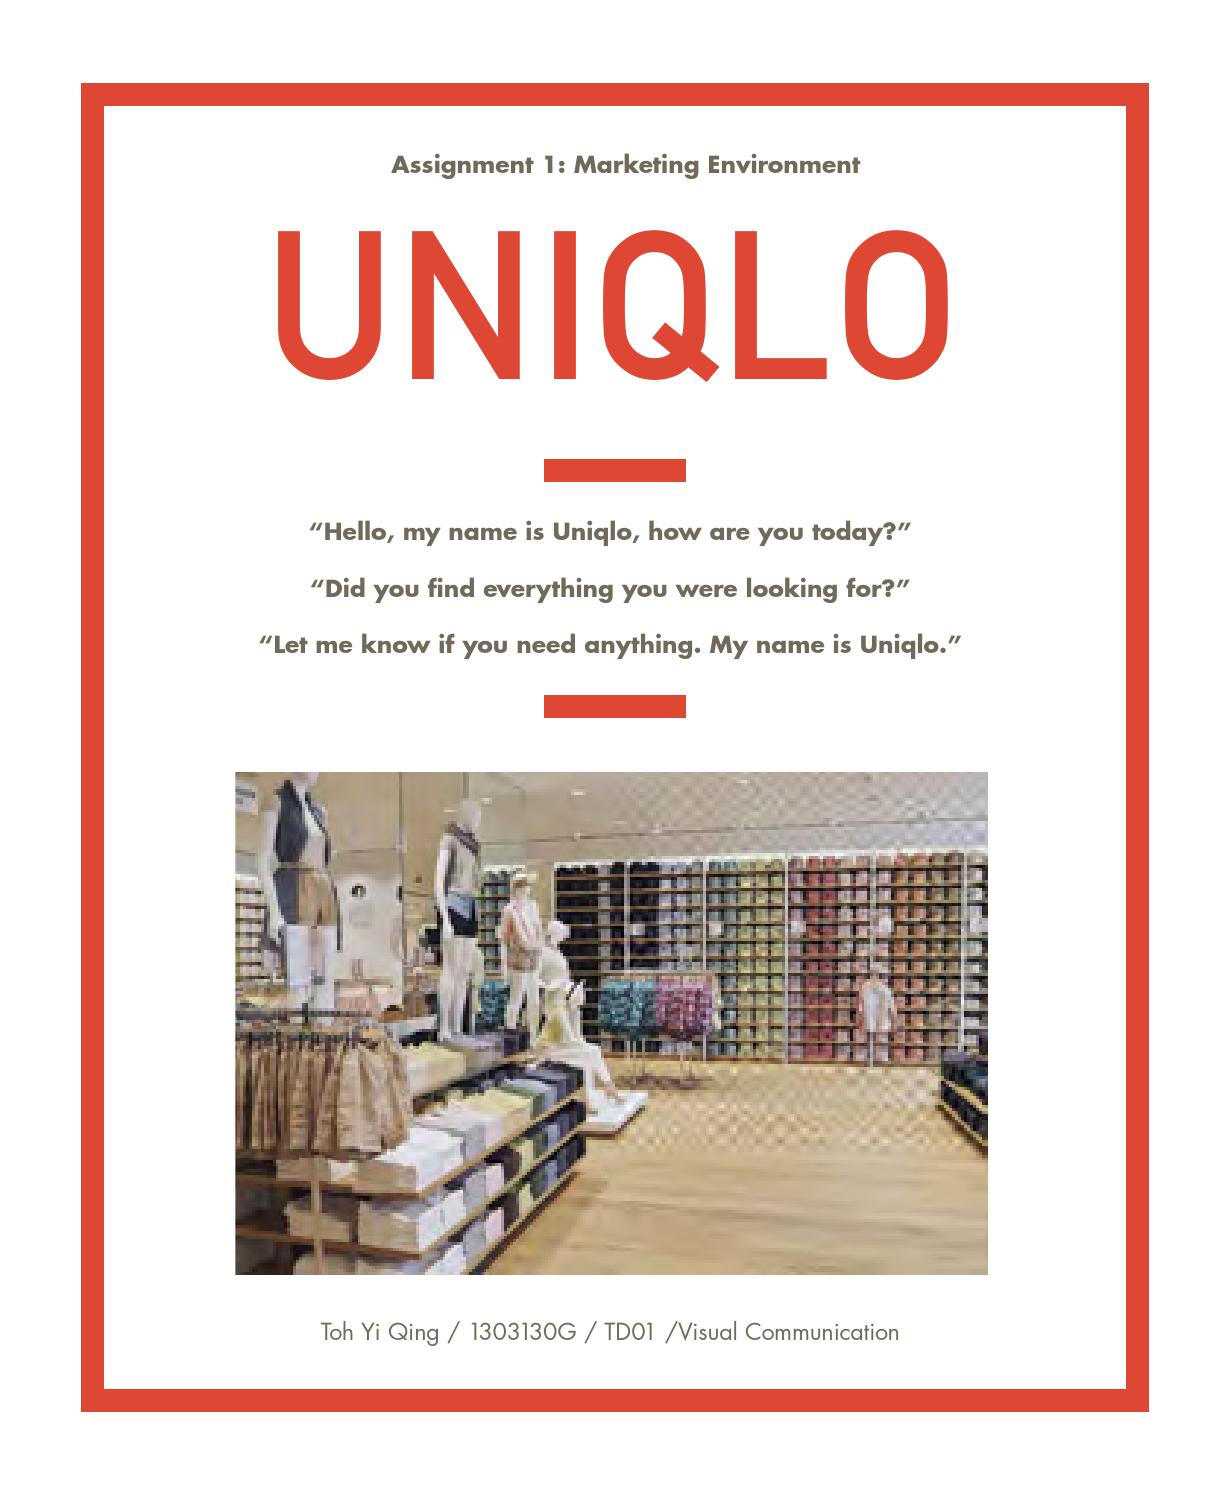 uniqlo competitive analysis by chena issuu uniqlo marketing report